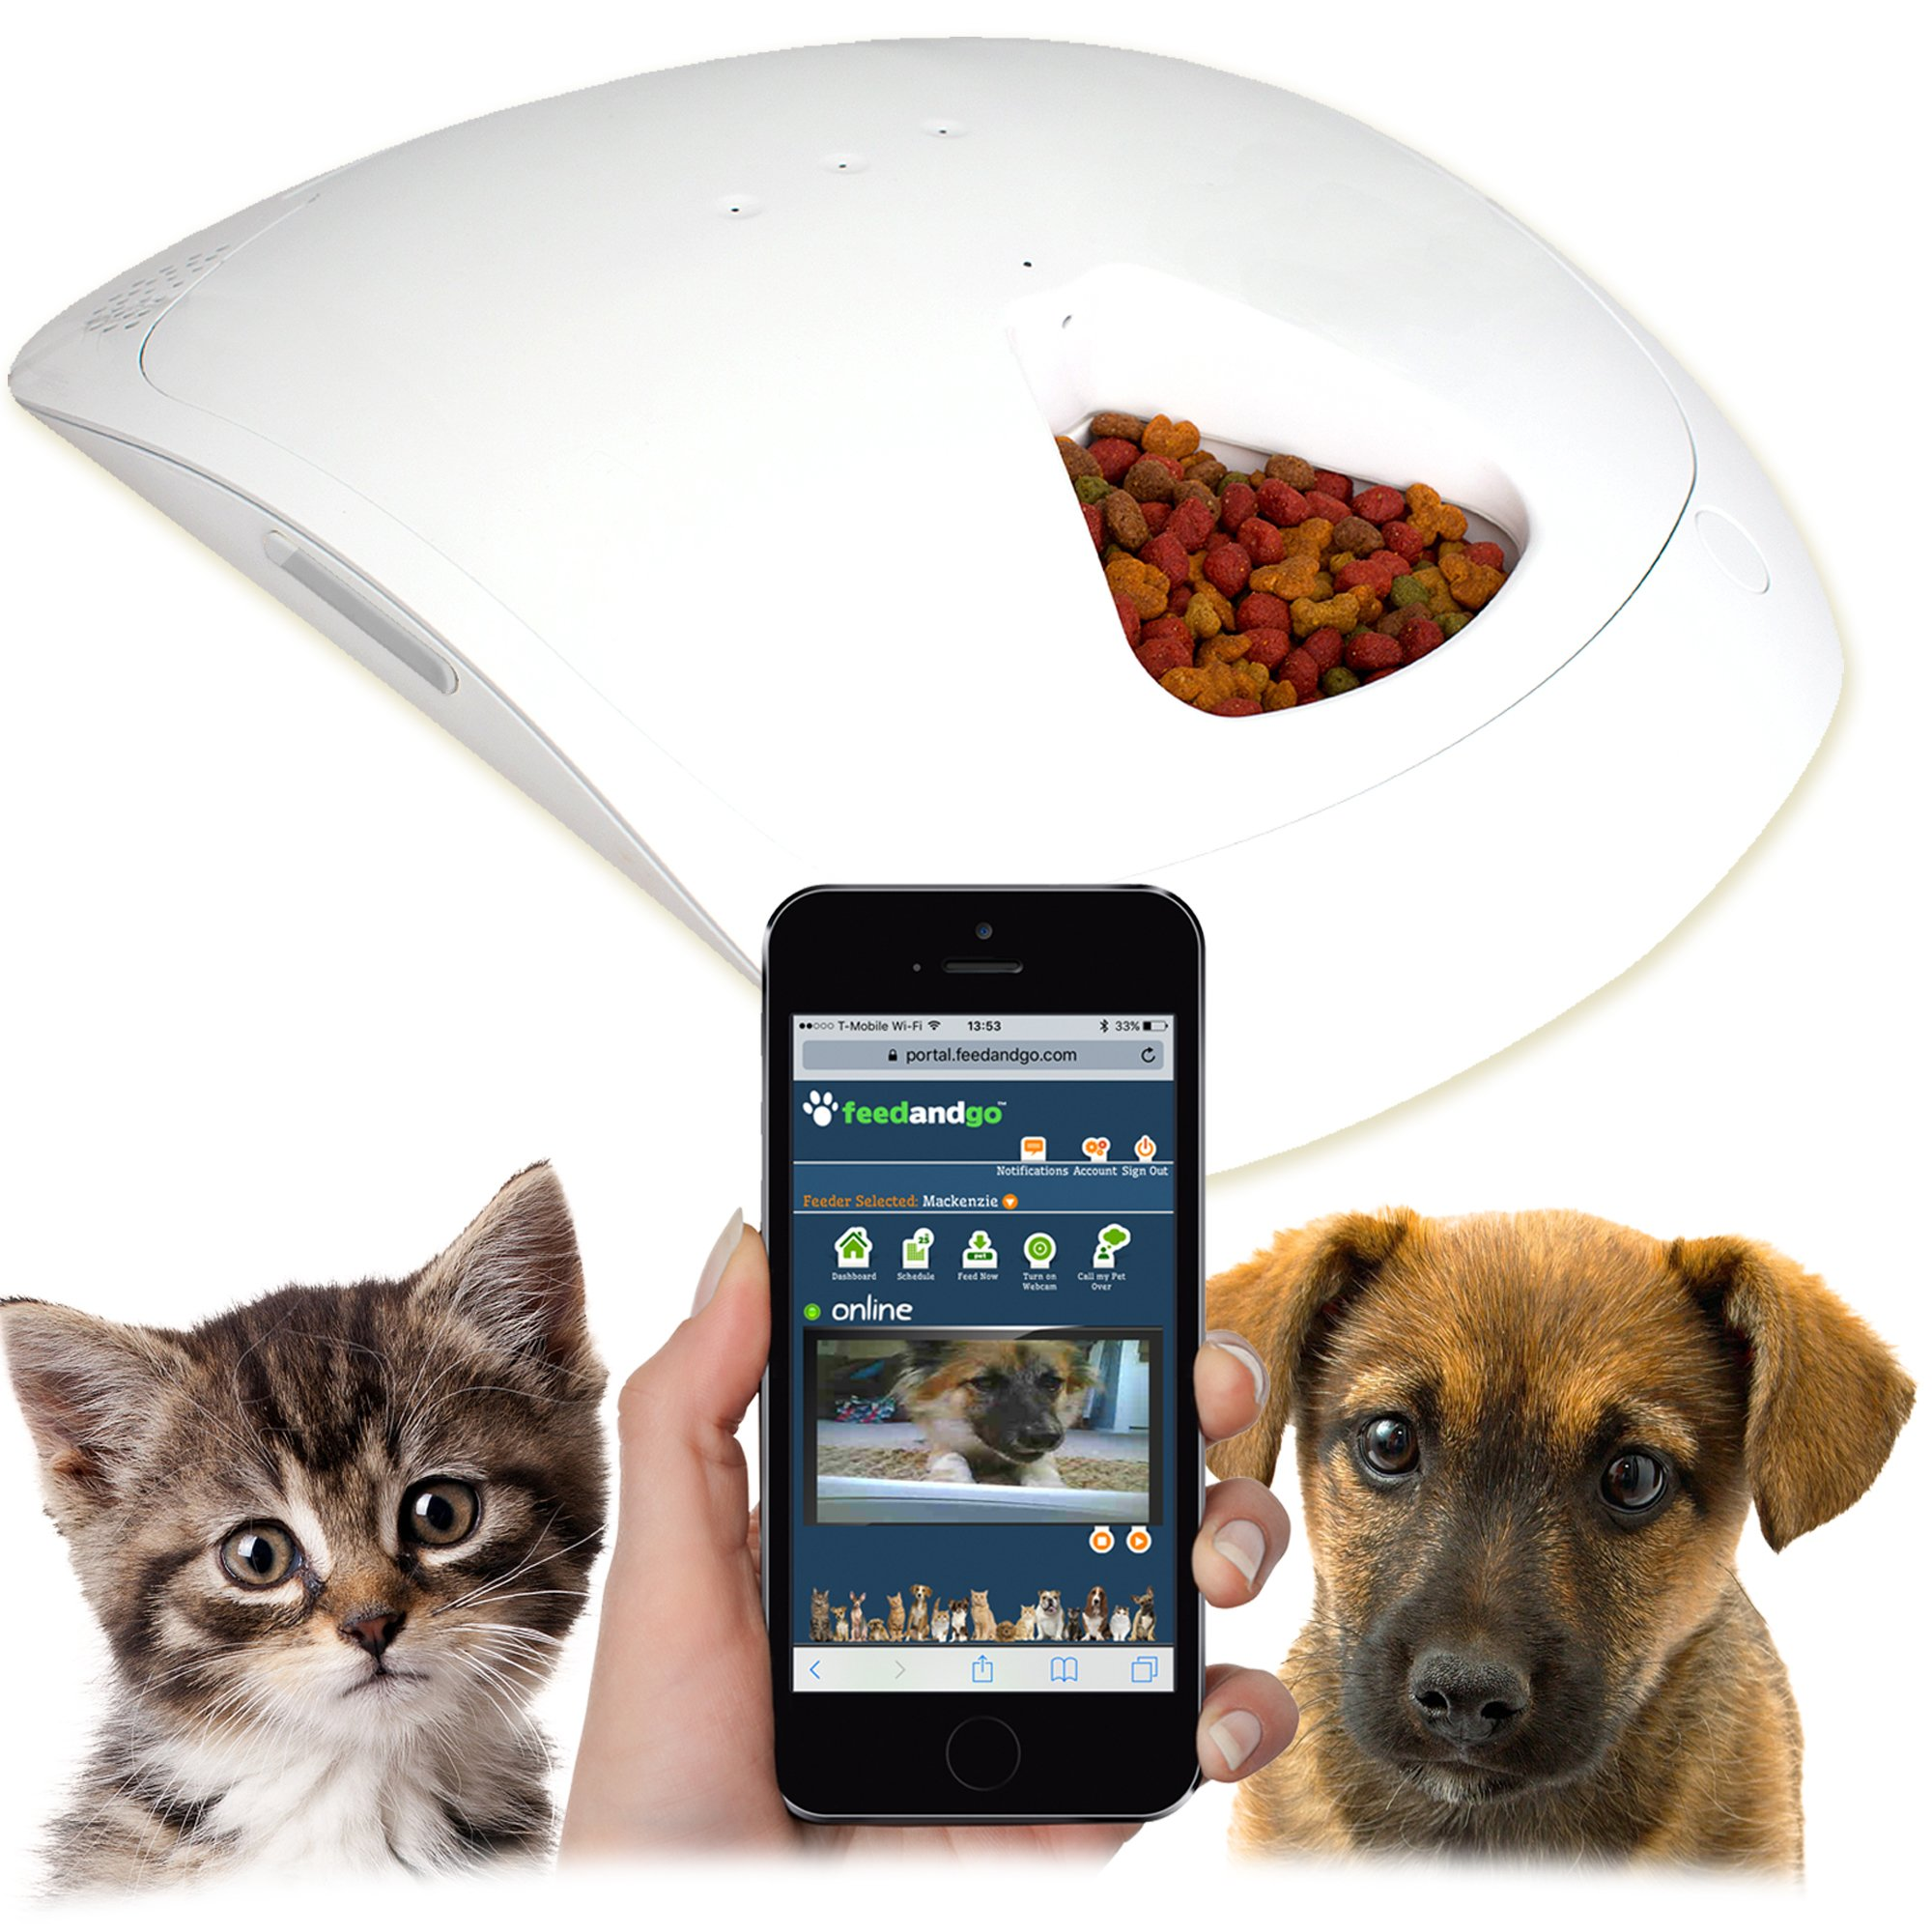 Feed and Go Pet Feeder